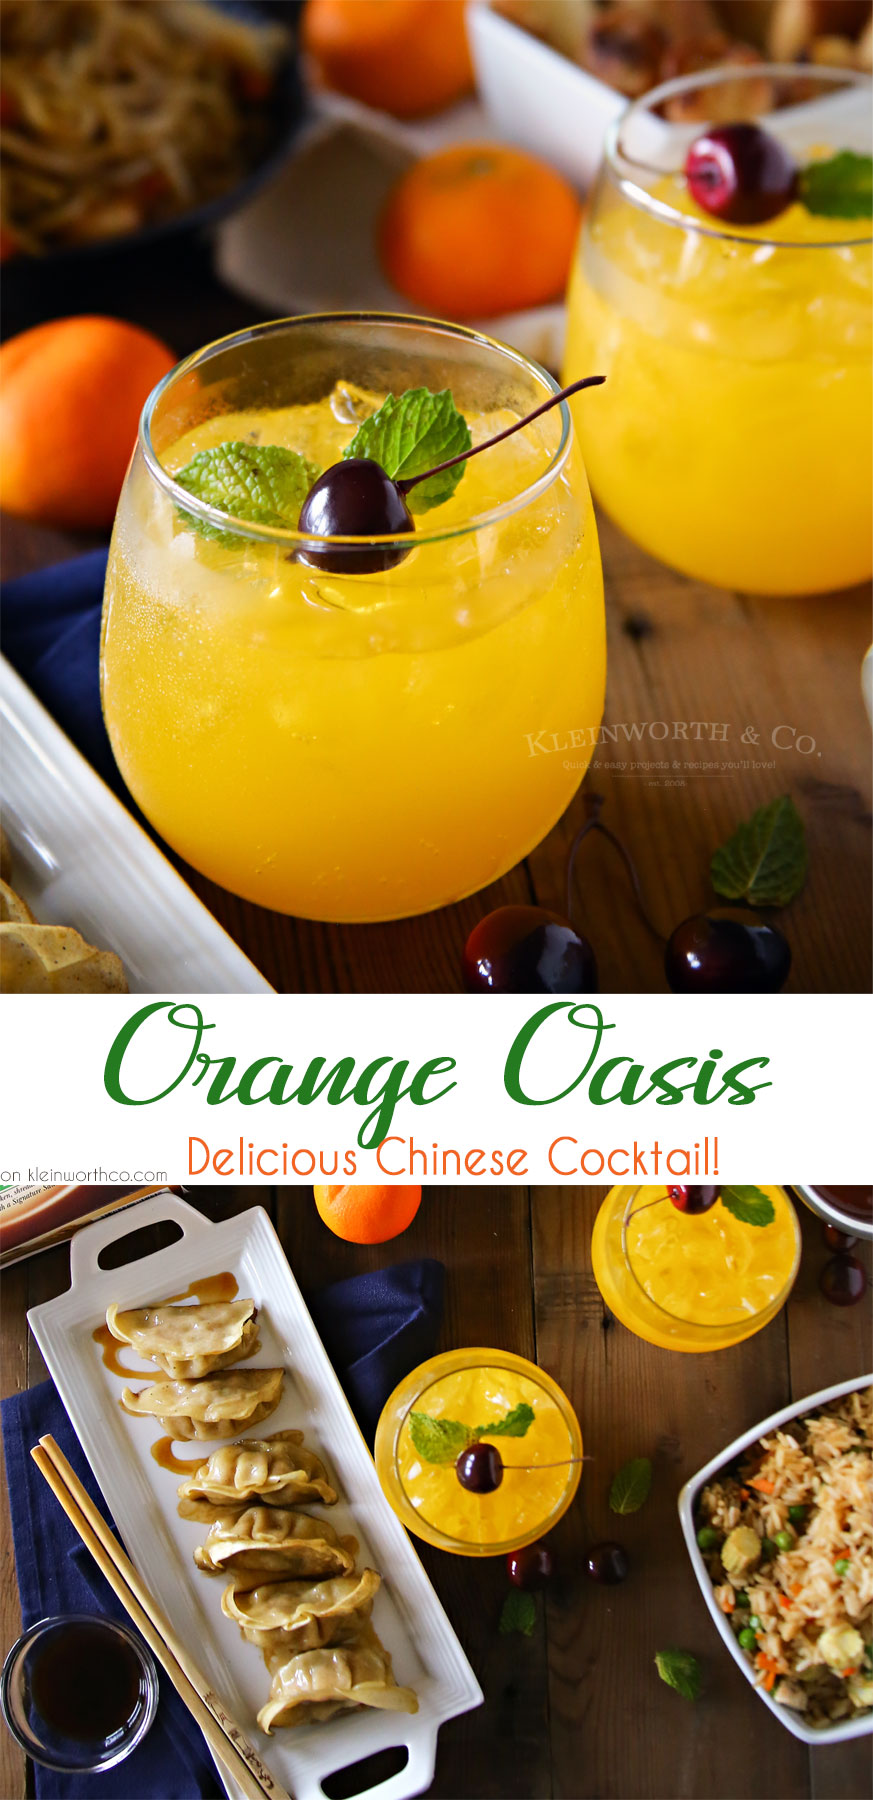 Orange Oasis Chinese Cocktail